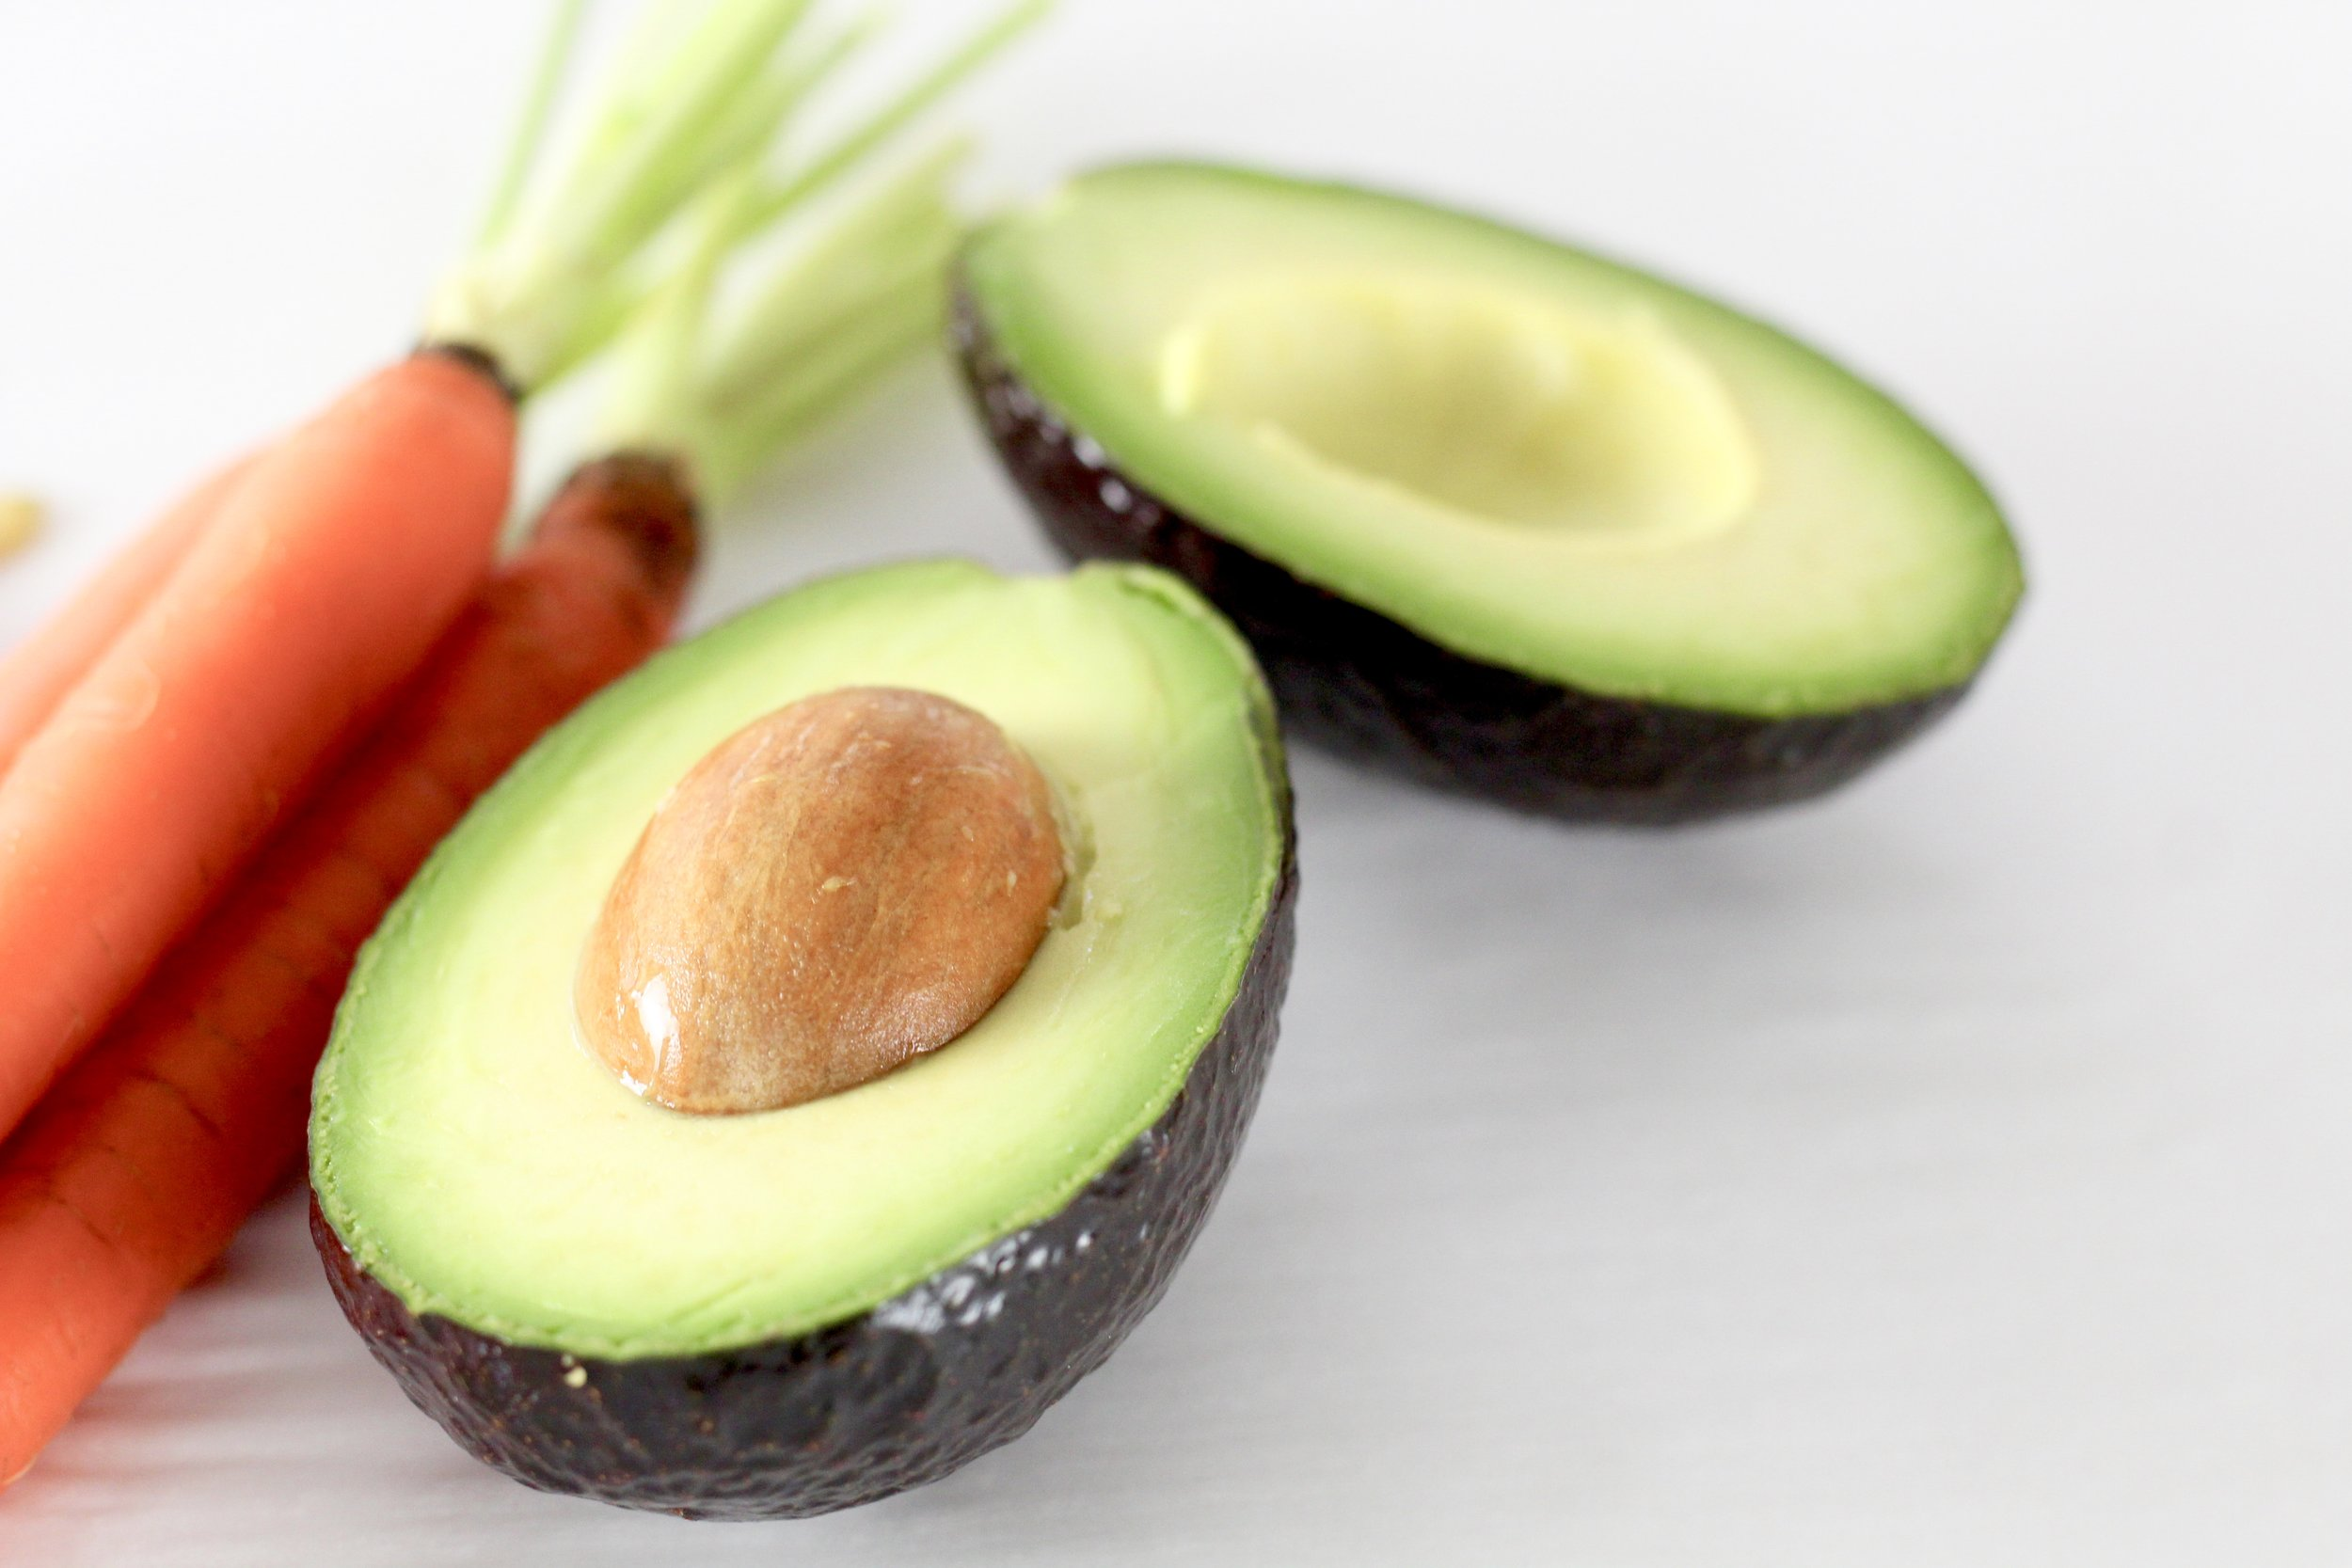 Top 5 Foods for Glowing Skin